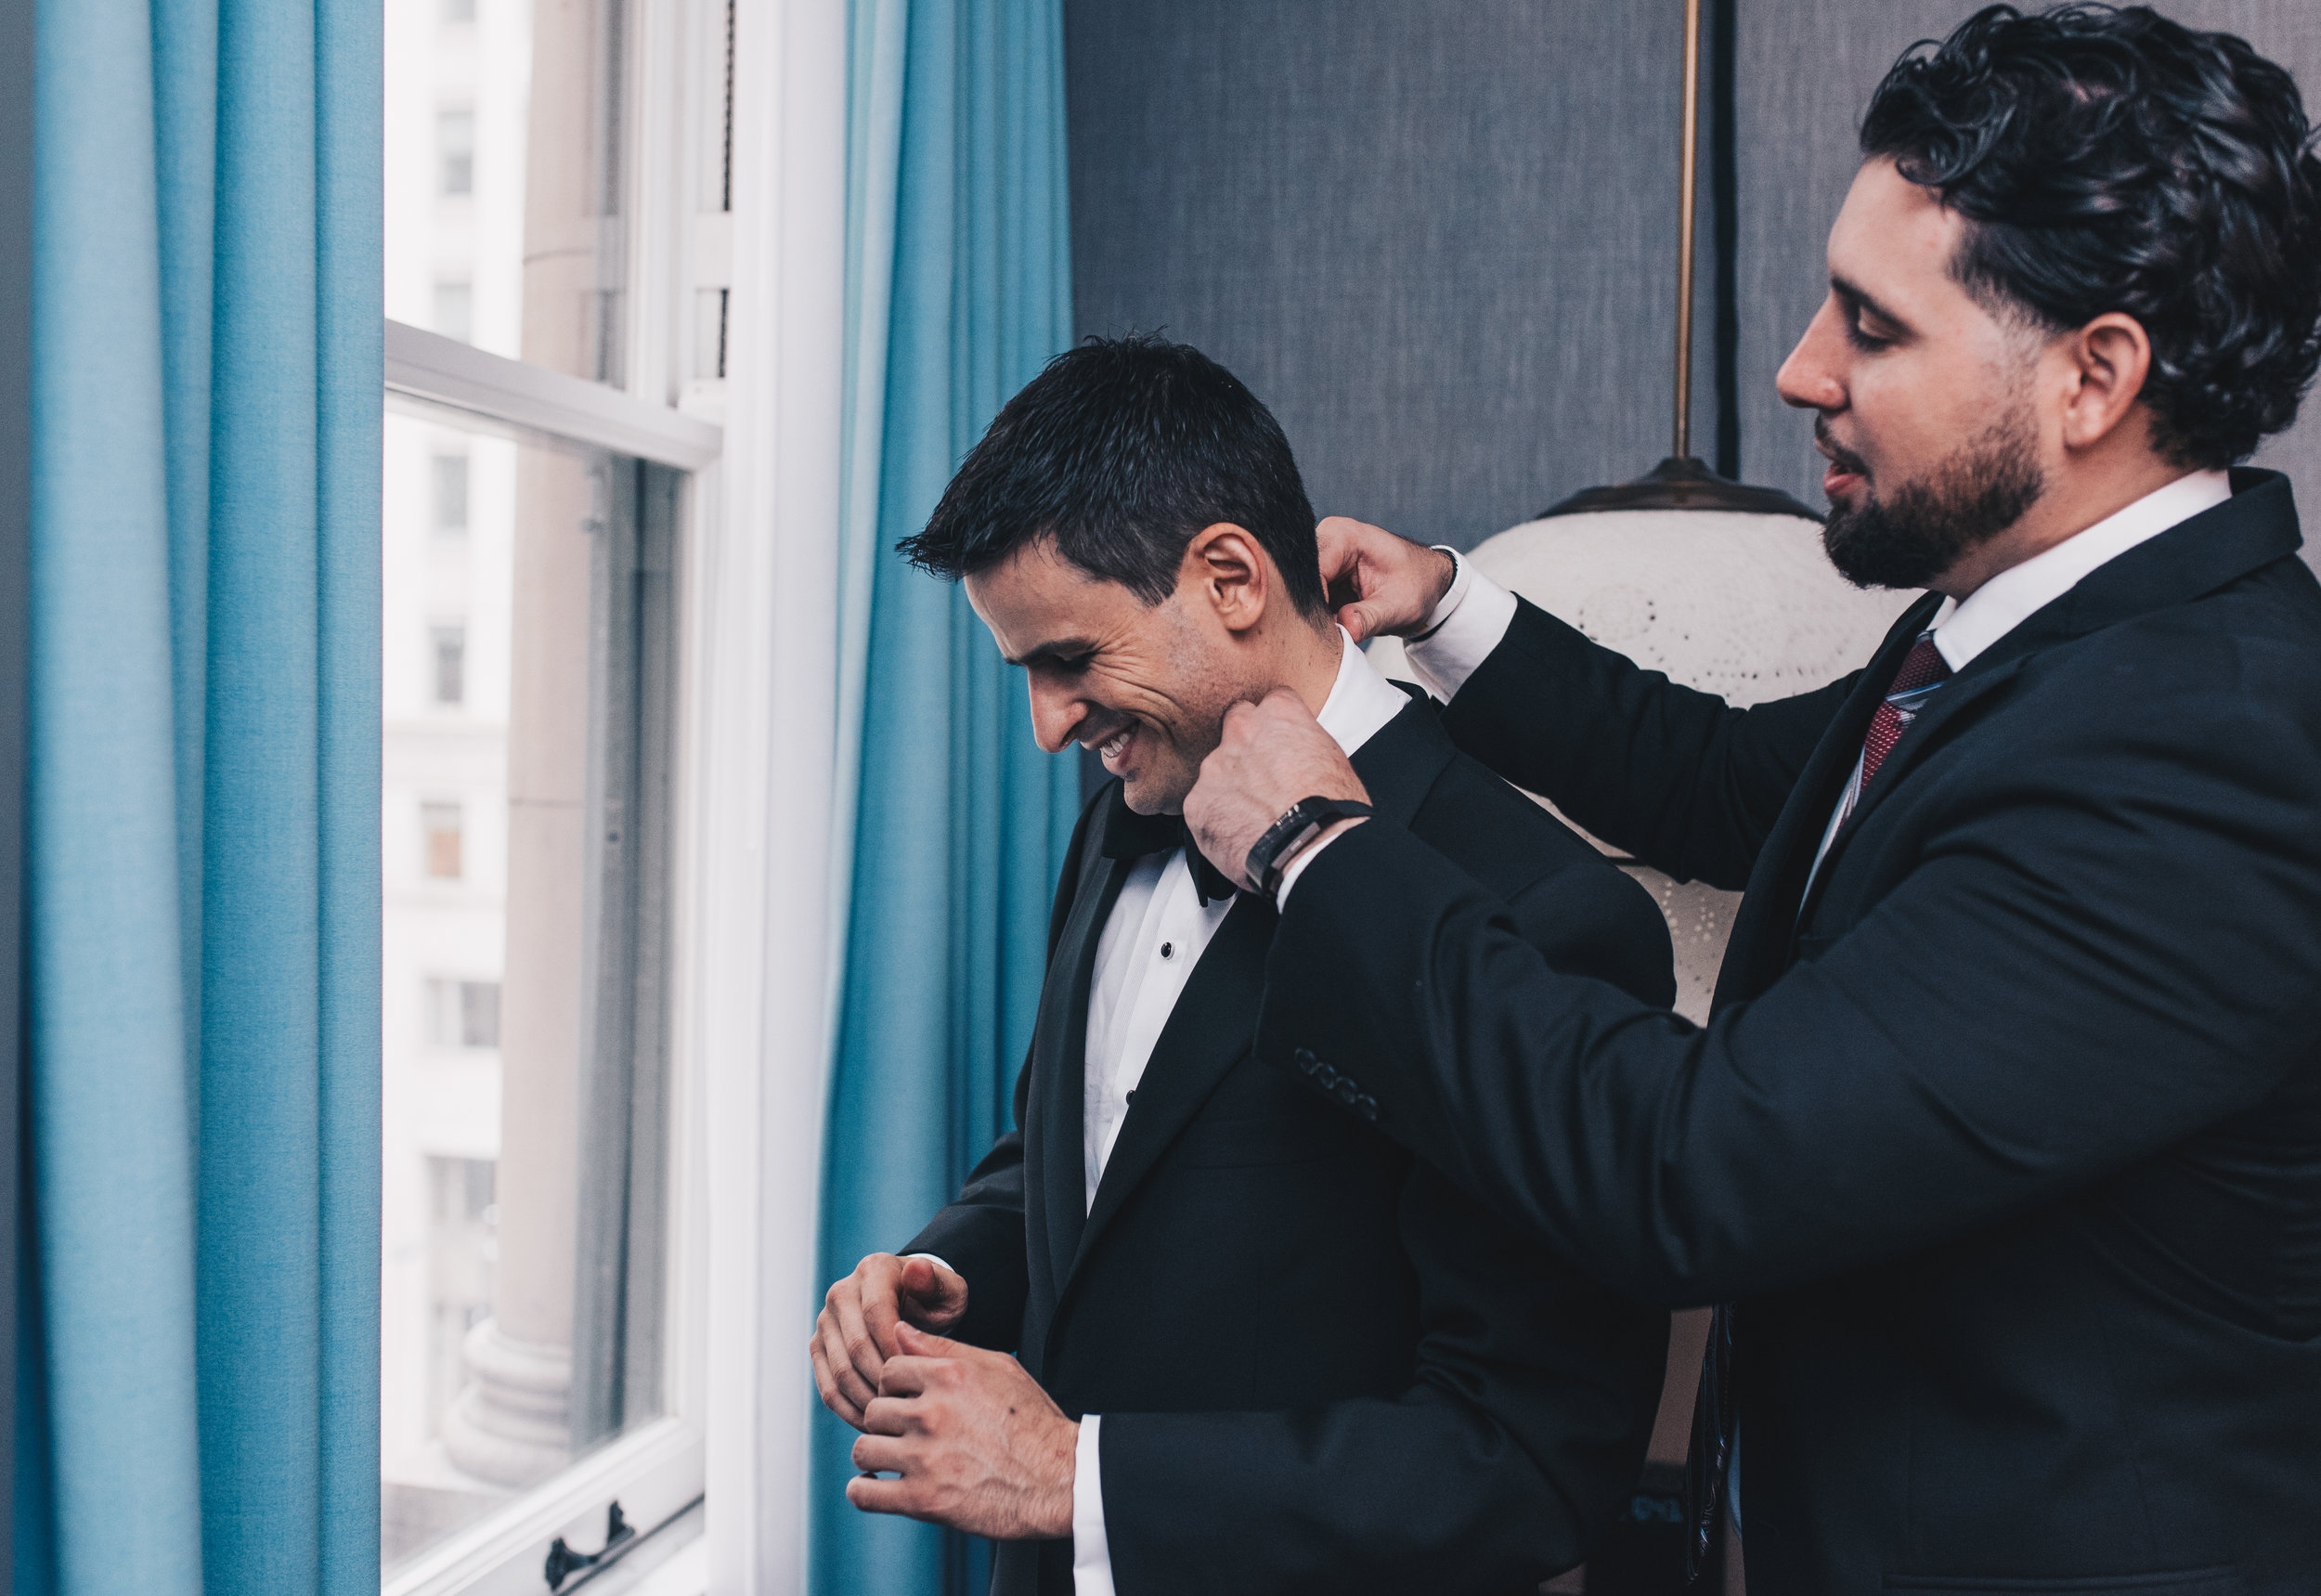 Groom Getting Ready Photos, Chicago Wedding, Kimpton Gray Hotel Wedding, Chicago Wedding Photographer